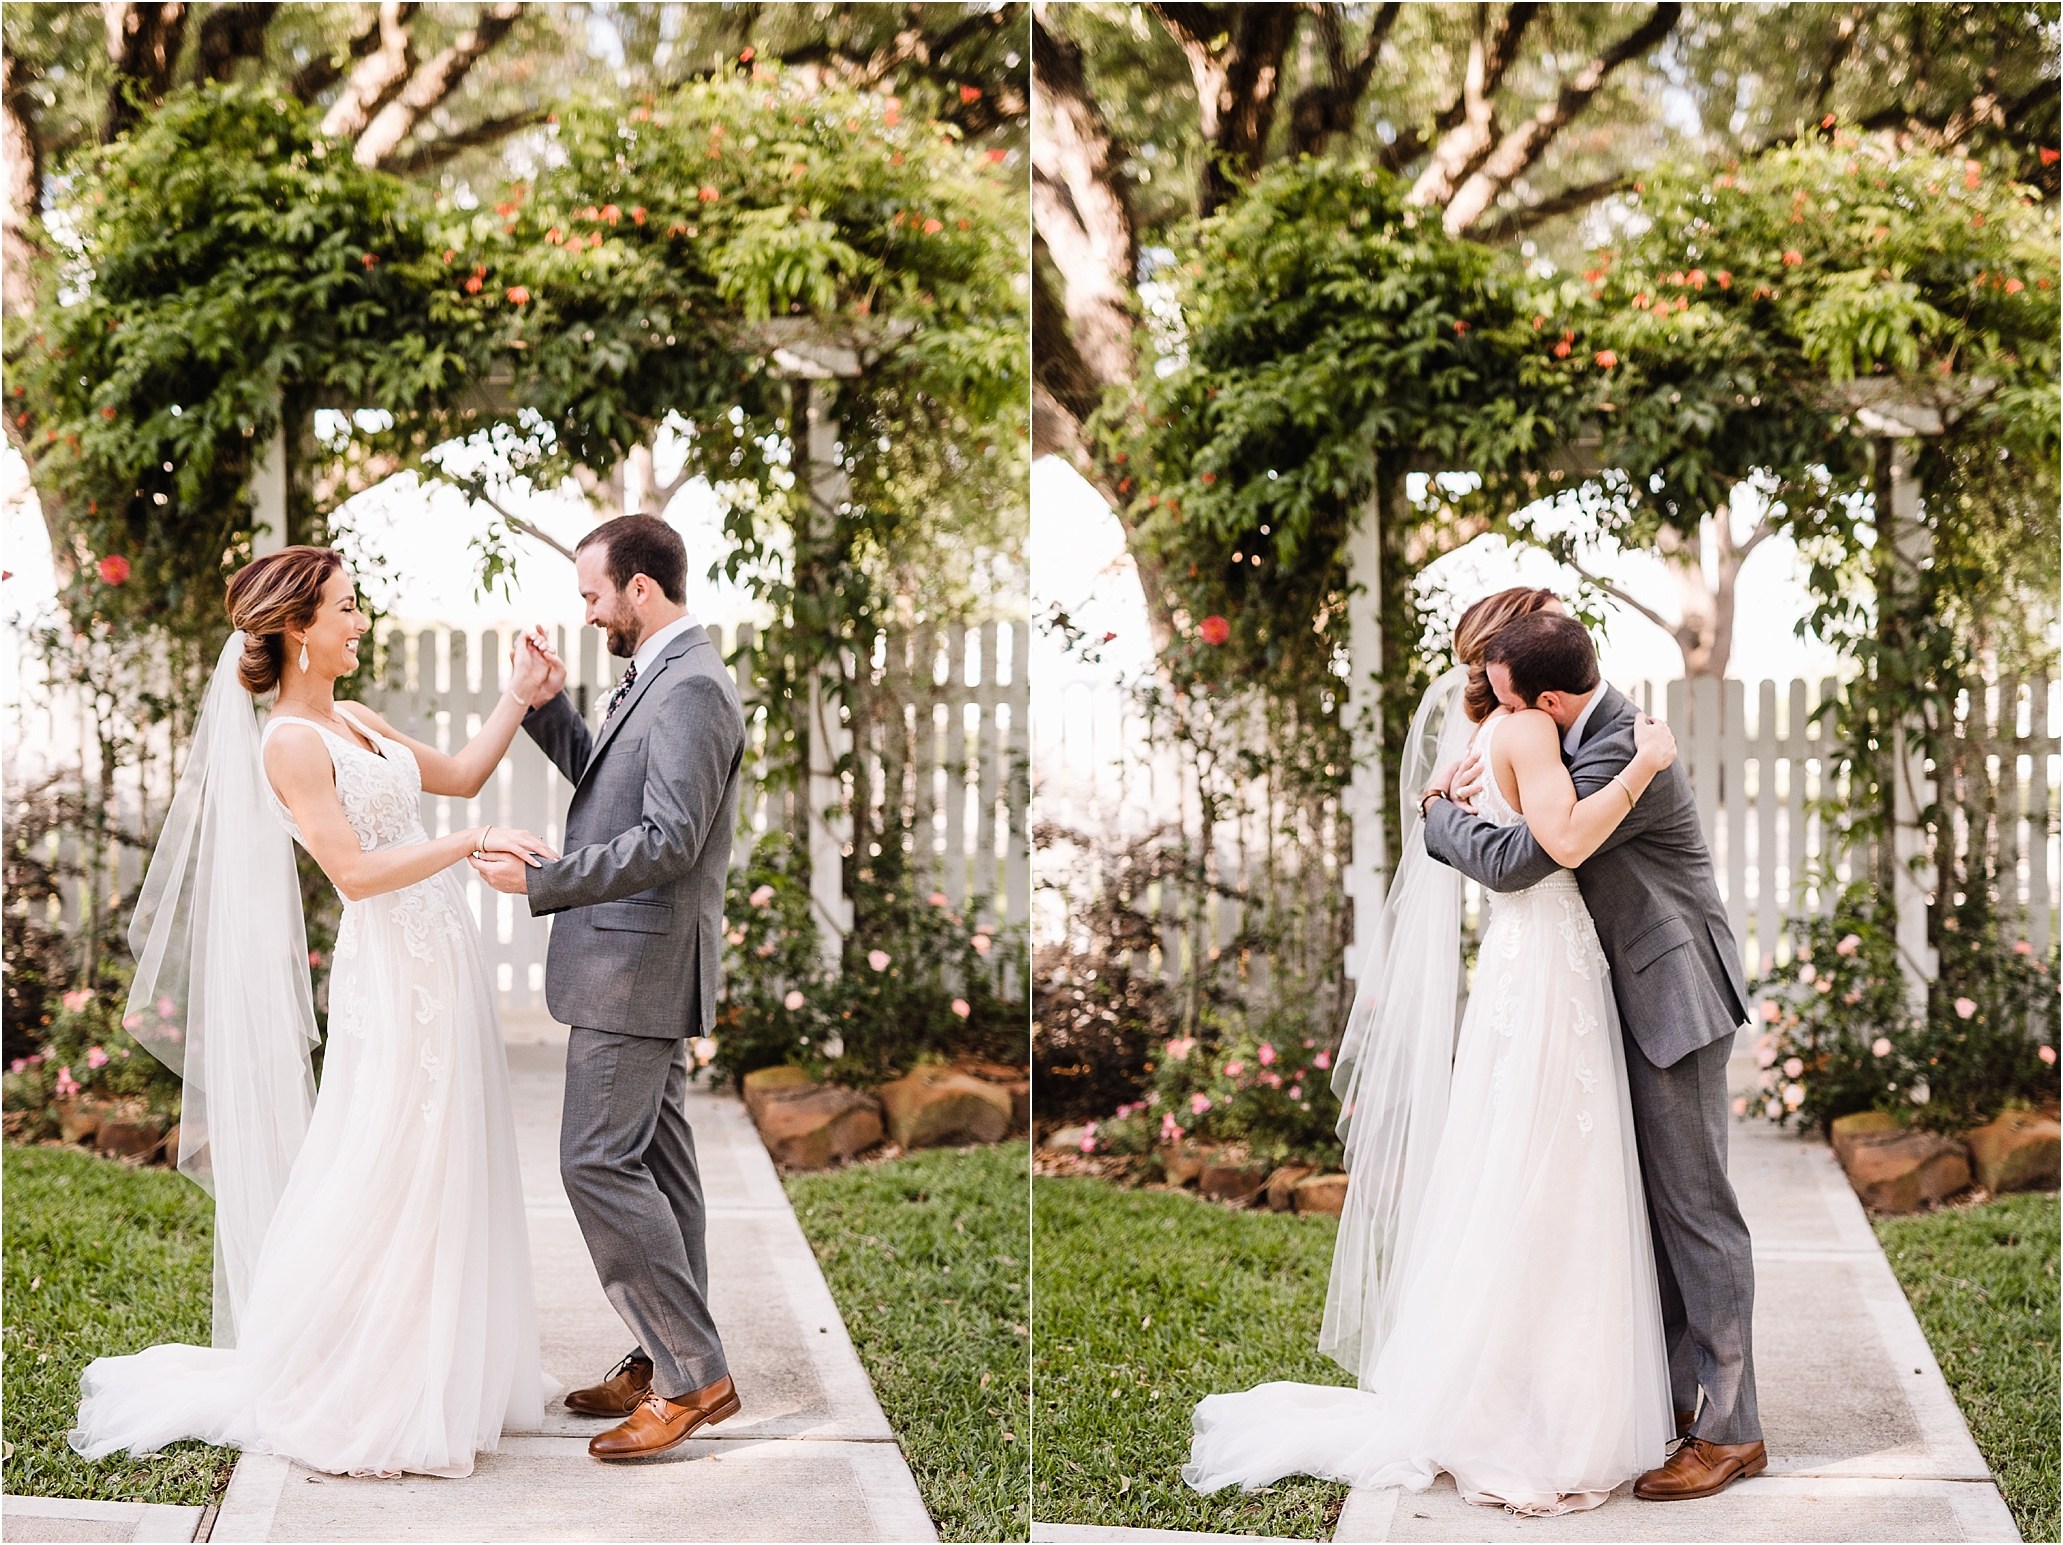 PattisonHouse_TexasWeddingPhotographer_CarlyCrockett&MattBrownWedding_0062.jpg